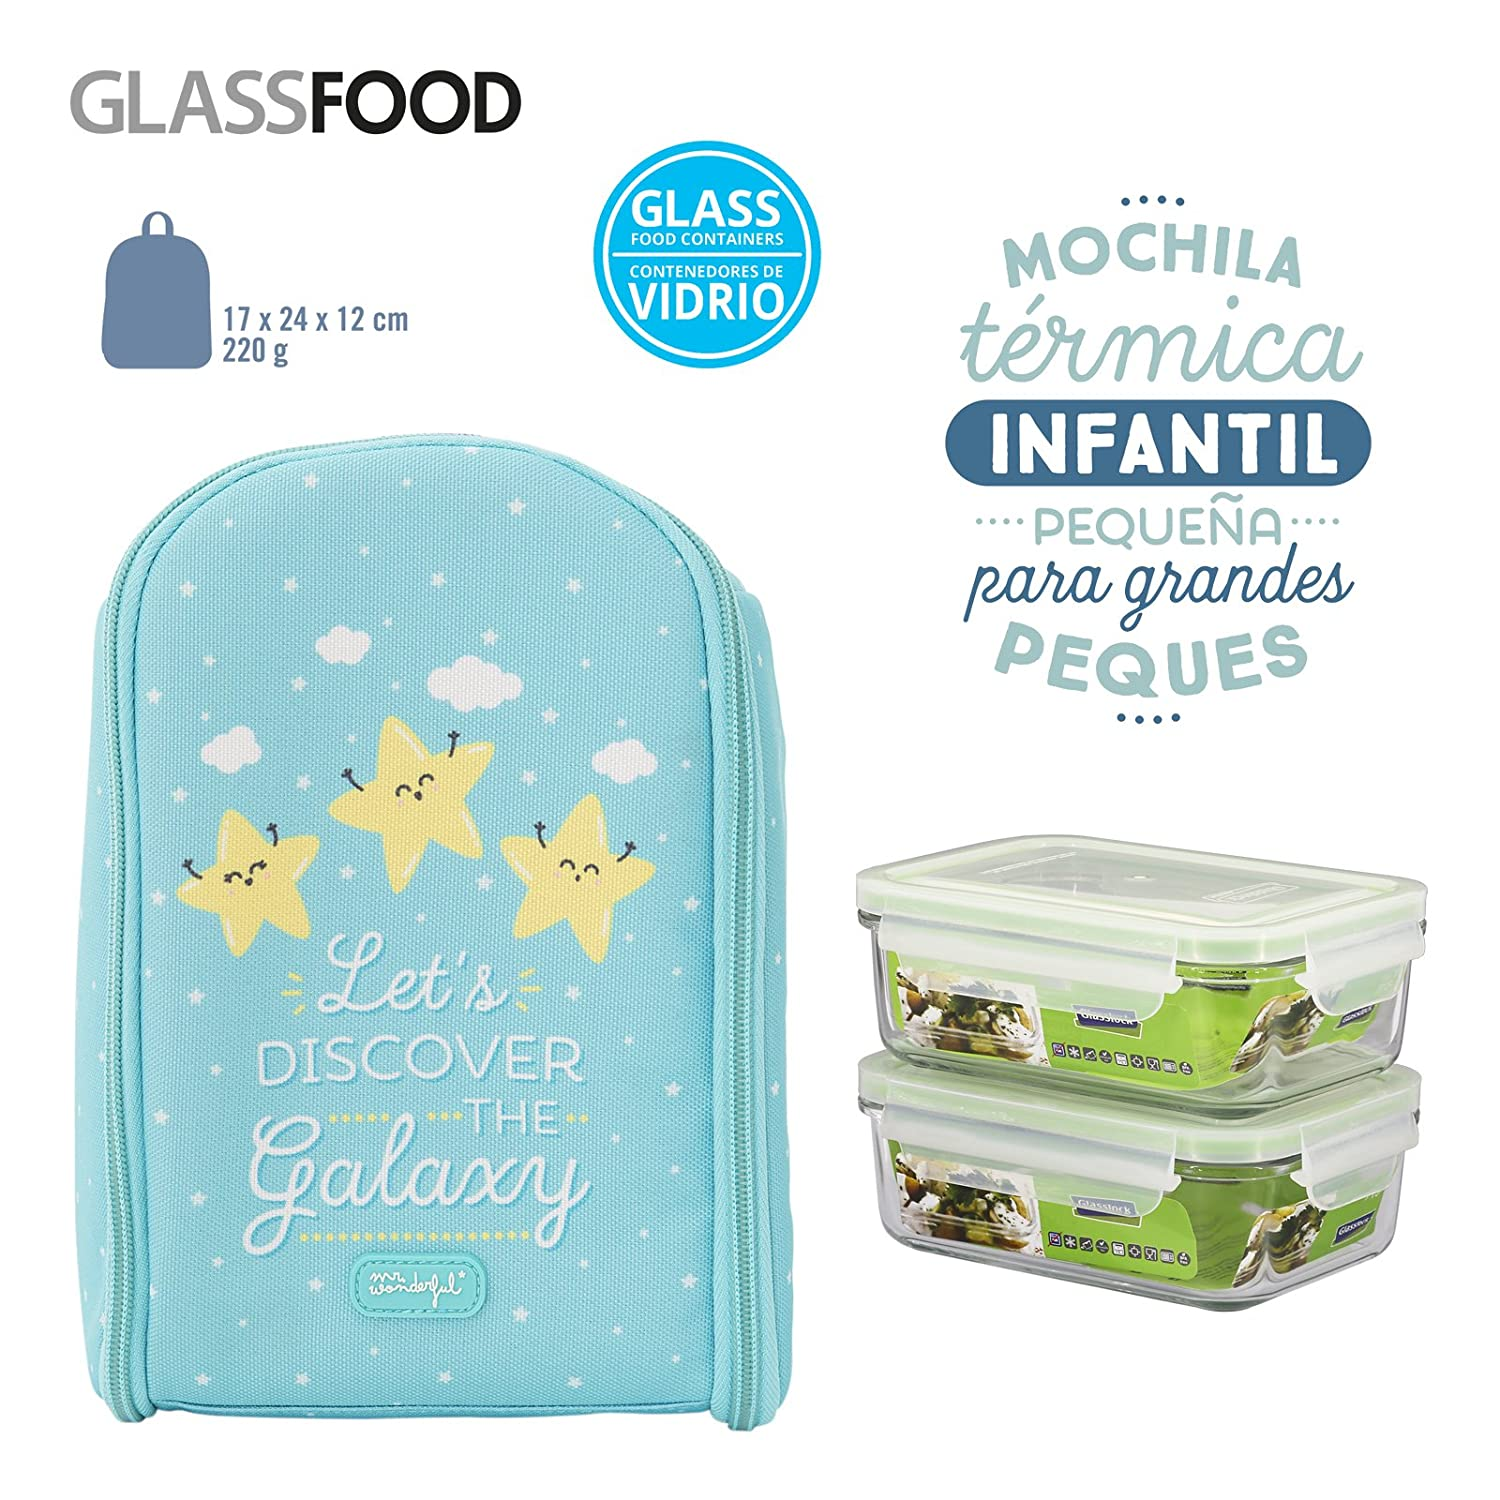 Pack Mochila Térmica Infantil Mr. Wonderful y 2 Taper Glasslock de Vidrio Hermeticos de 0.4L, Medidas 17 x 24 x 12 cm, Modelo Estrellas: Amazon.es: Bebé